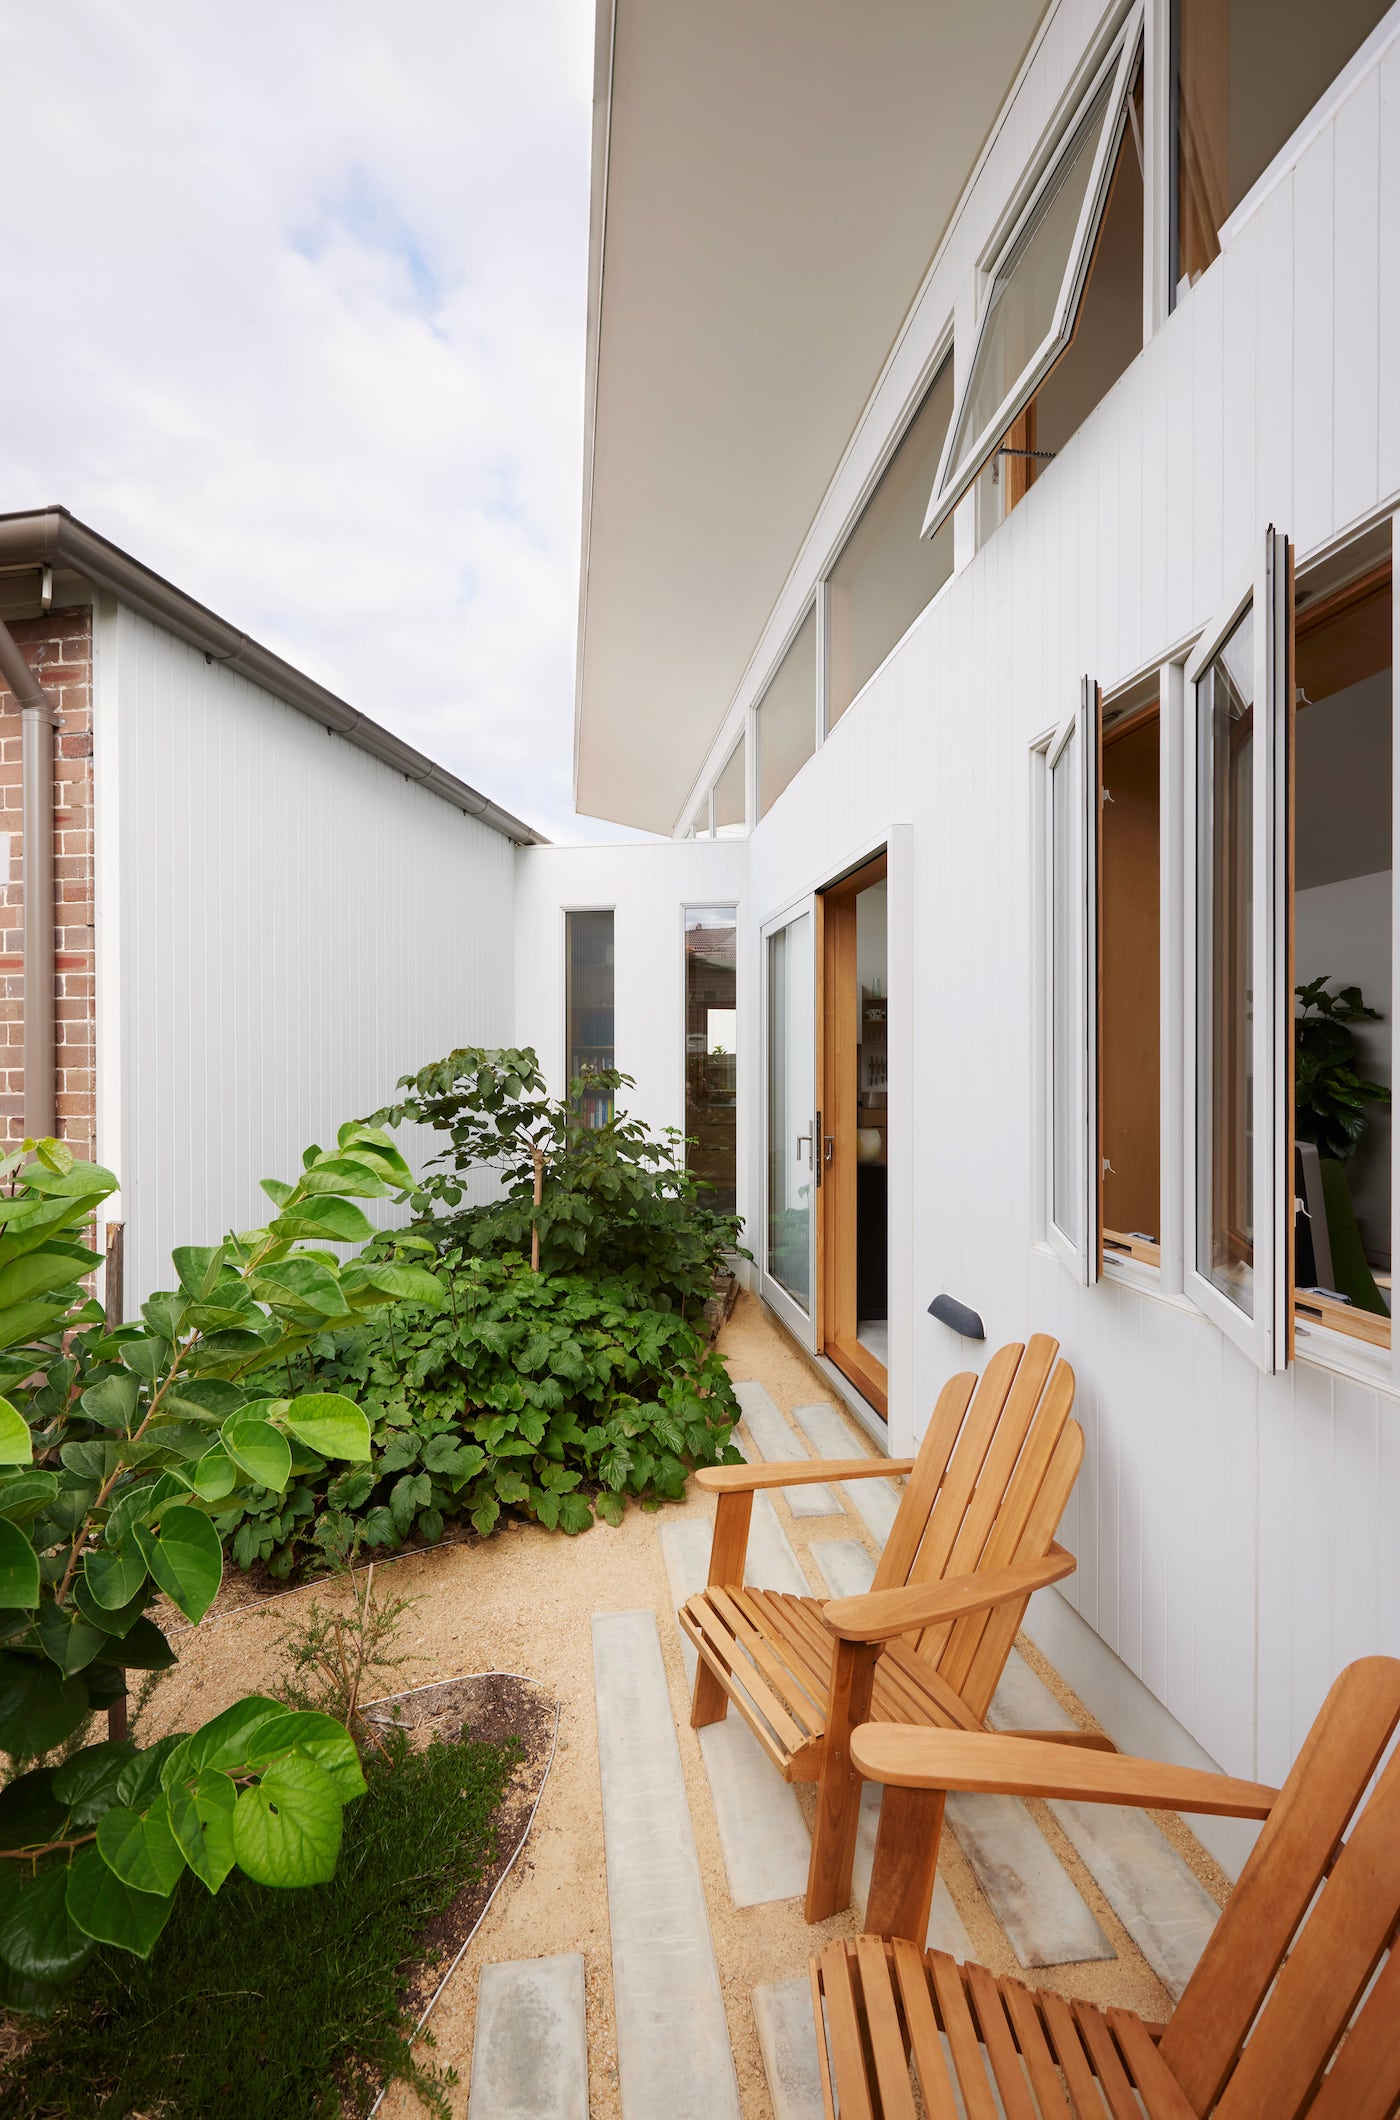 Timber chairs in front of sustainable new house addition